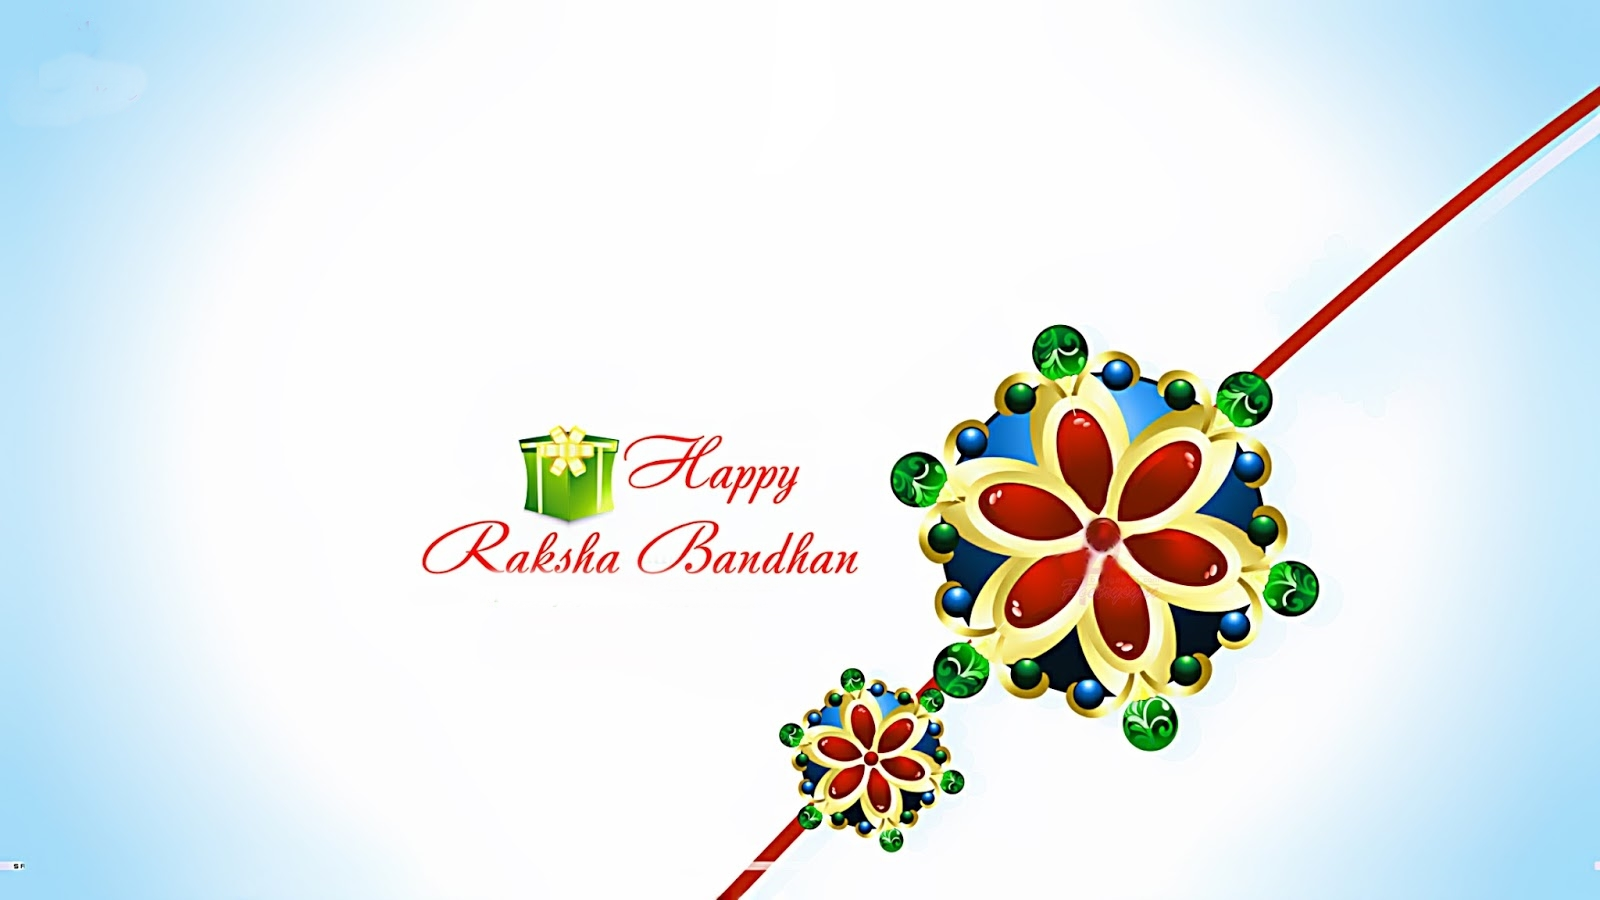 Raksha Bandhan 2017 Happy Raksha Bandhan Images Greeting Cards